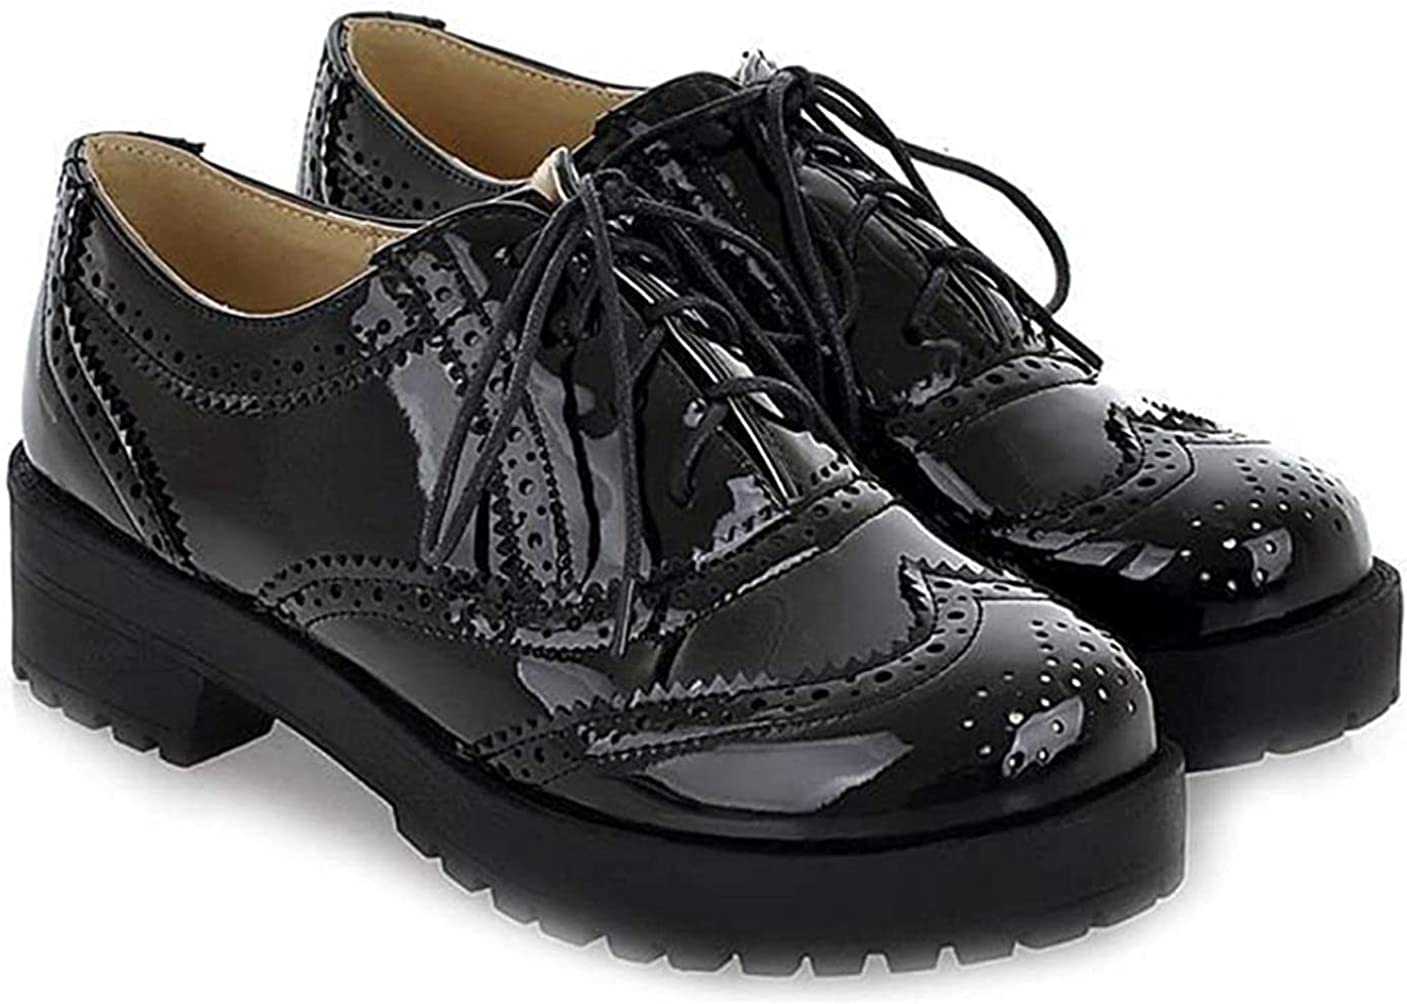 Women's Classic Flat Saddle Oxford Shoes Max 43% OFF Up Comfort 67% OFF of fixed price Lace Low Hee